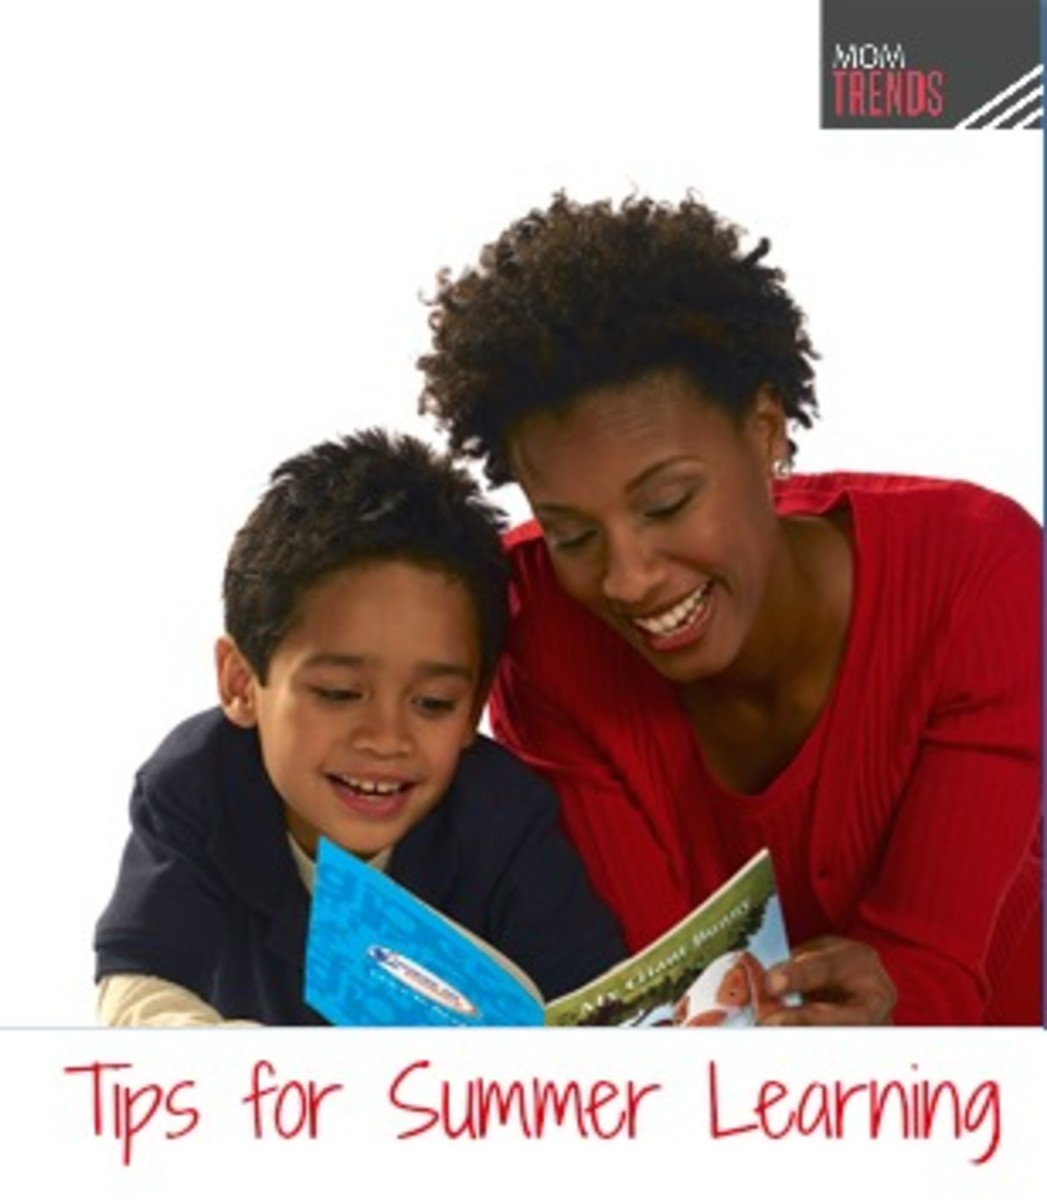 Tips for Summer Learning